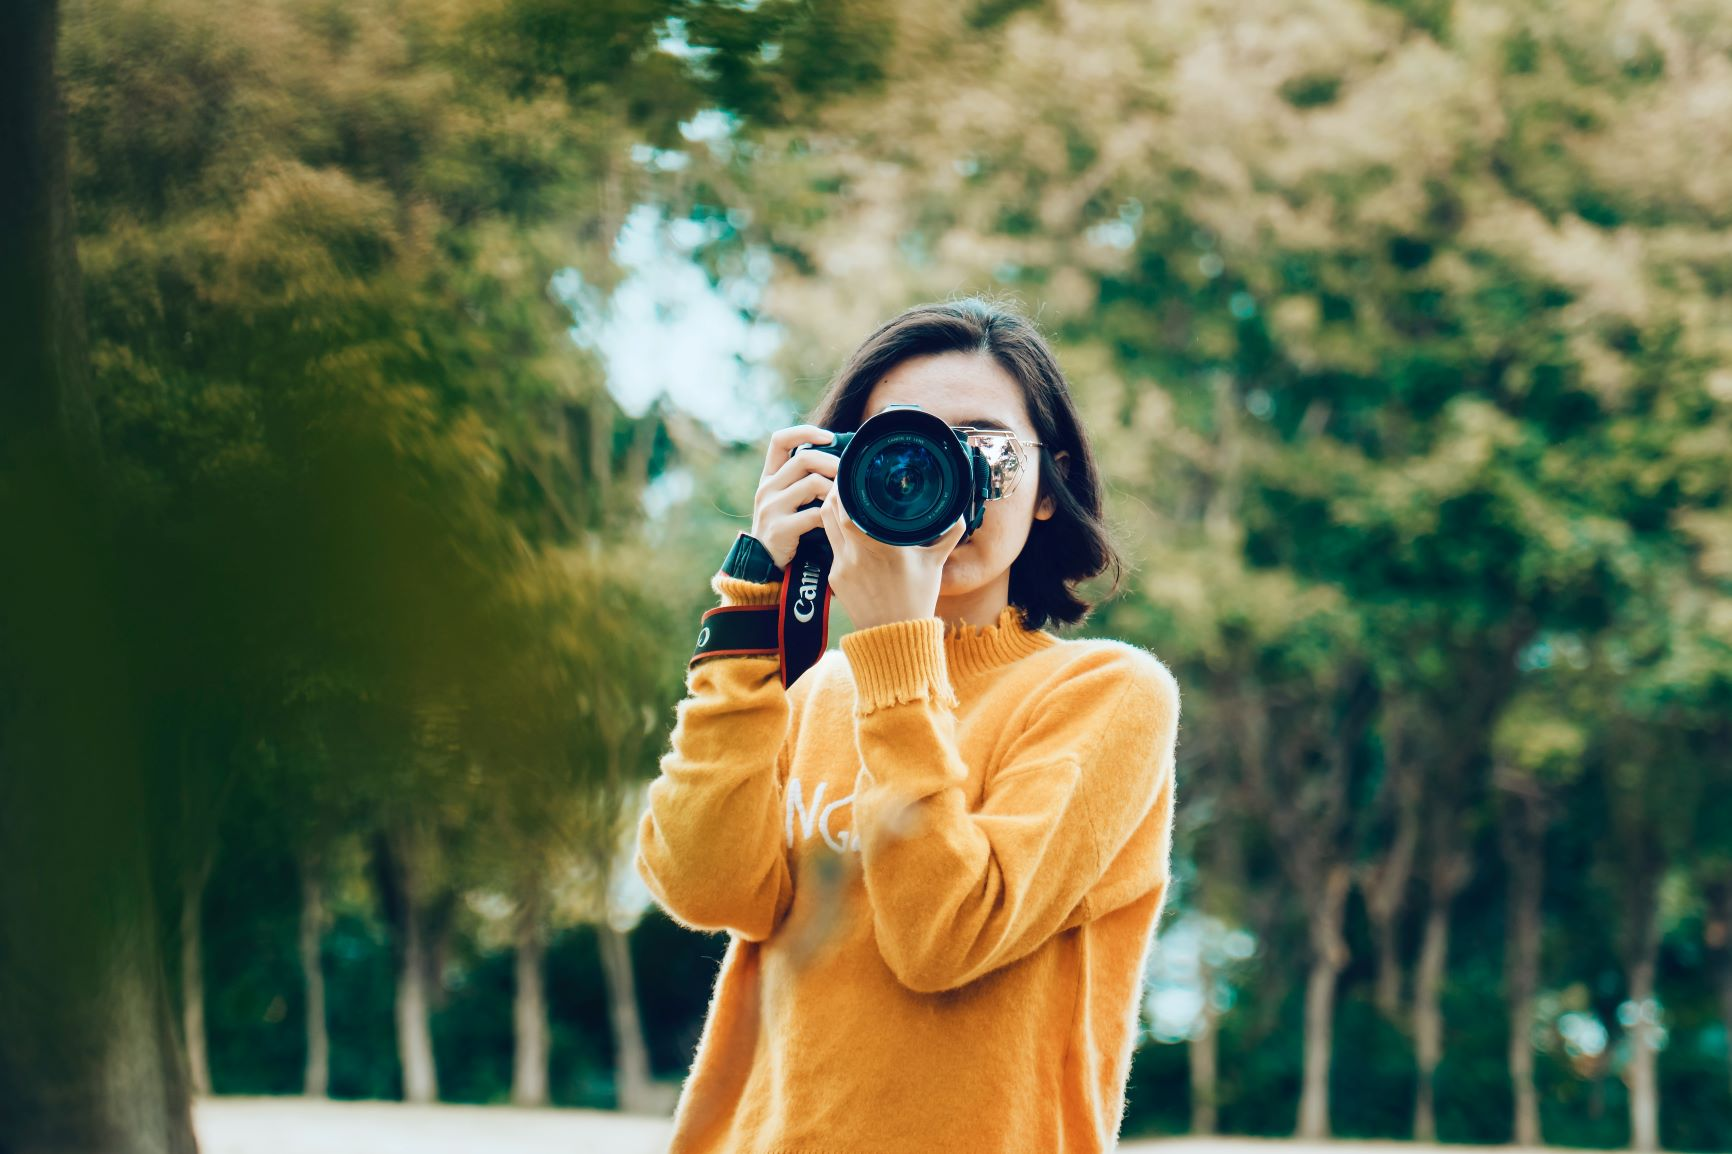 Girl with a camera taking a photograph